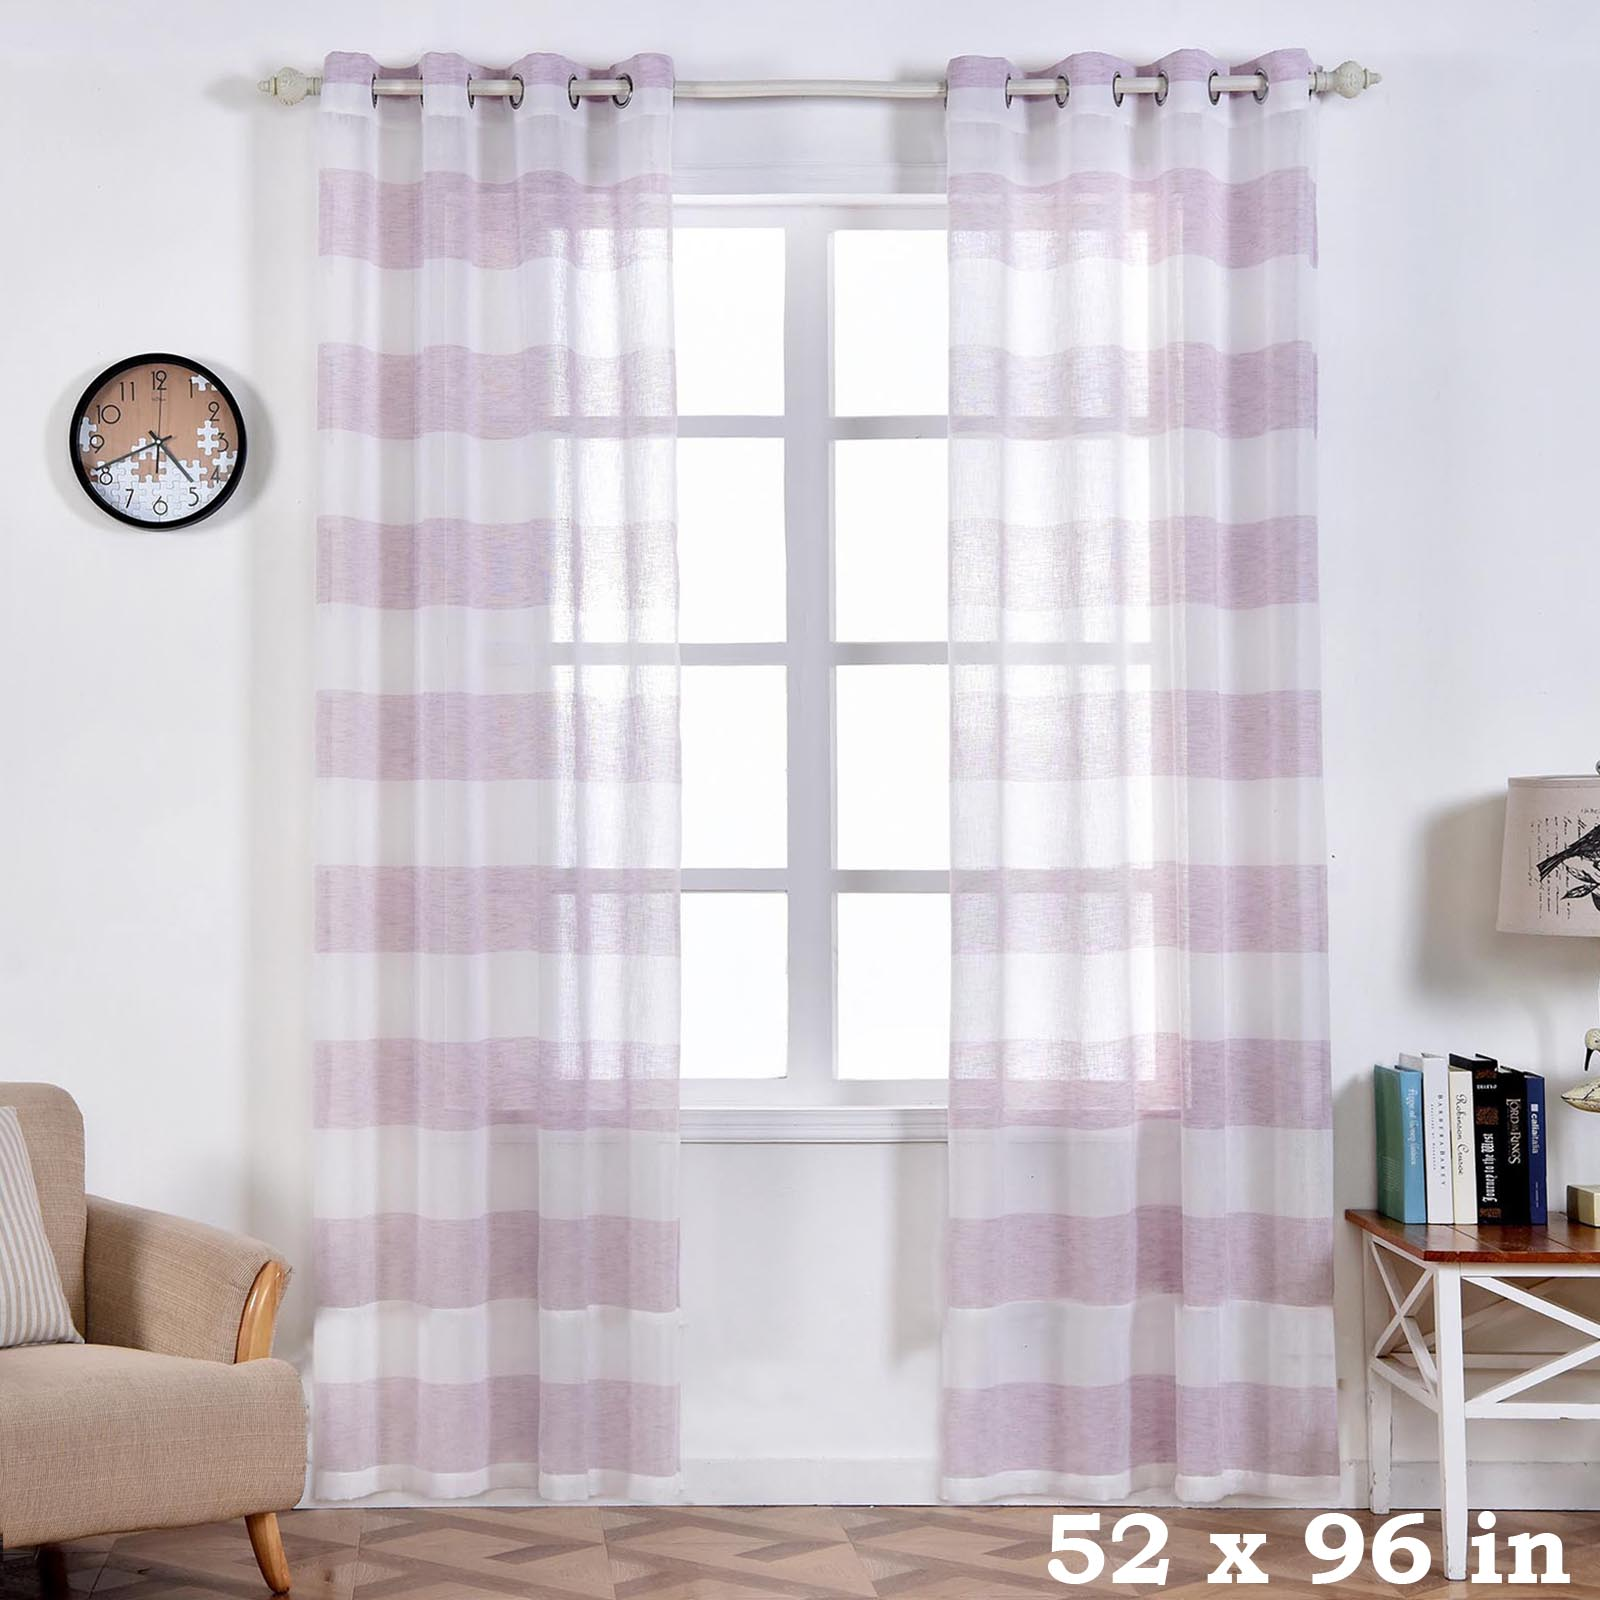 Lavender Sheer Curtains Details About 2 Pcs White And Lavender 52